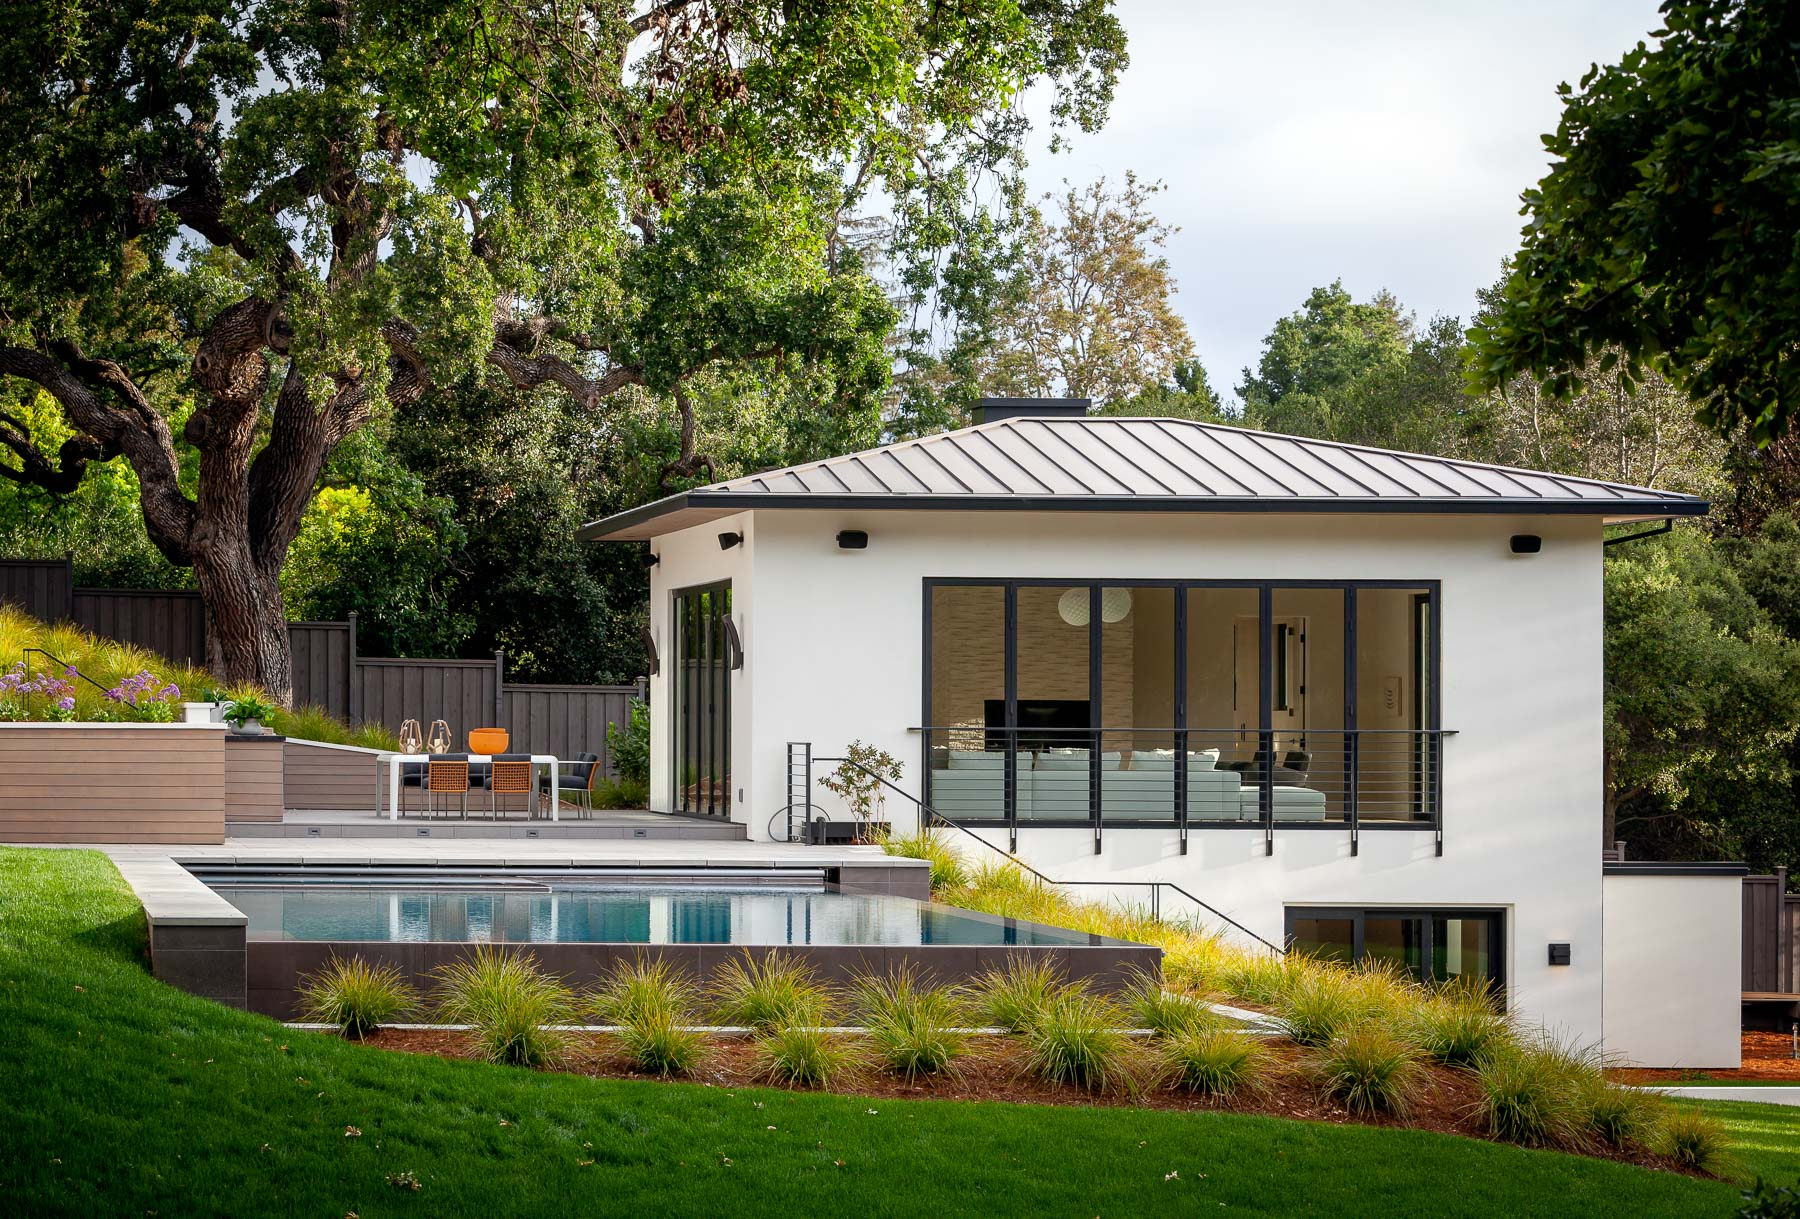 Los Altos Residence - Scott Hargis Photo